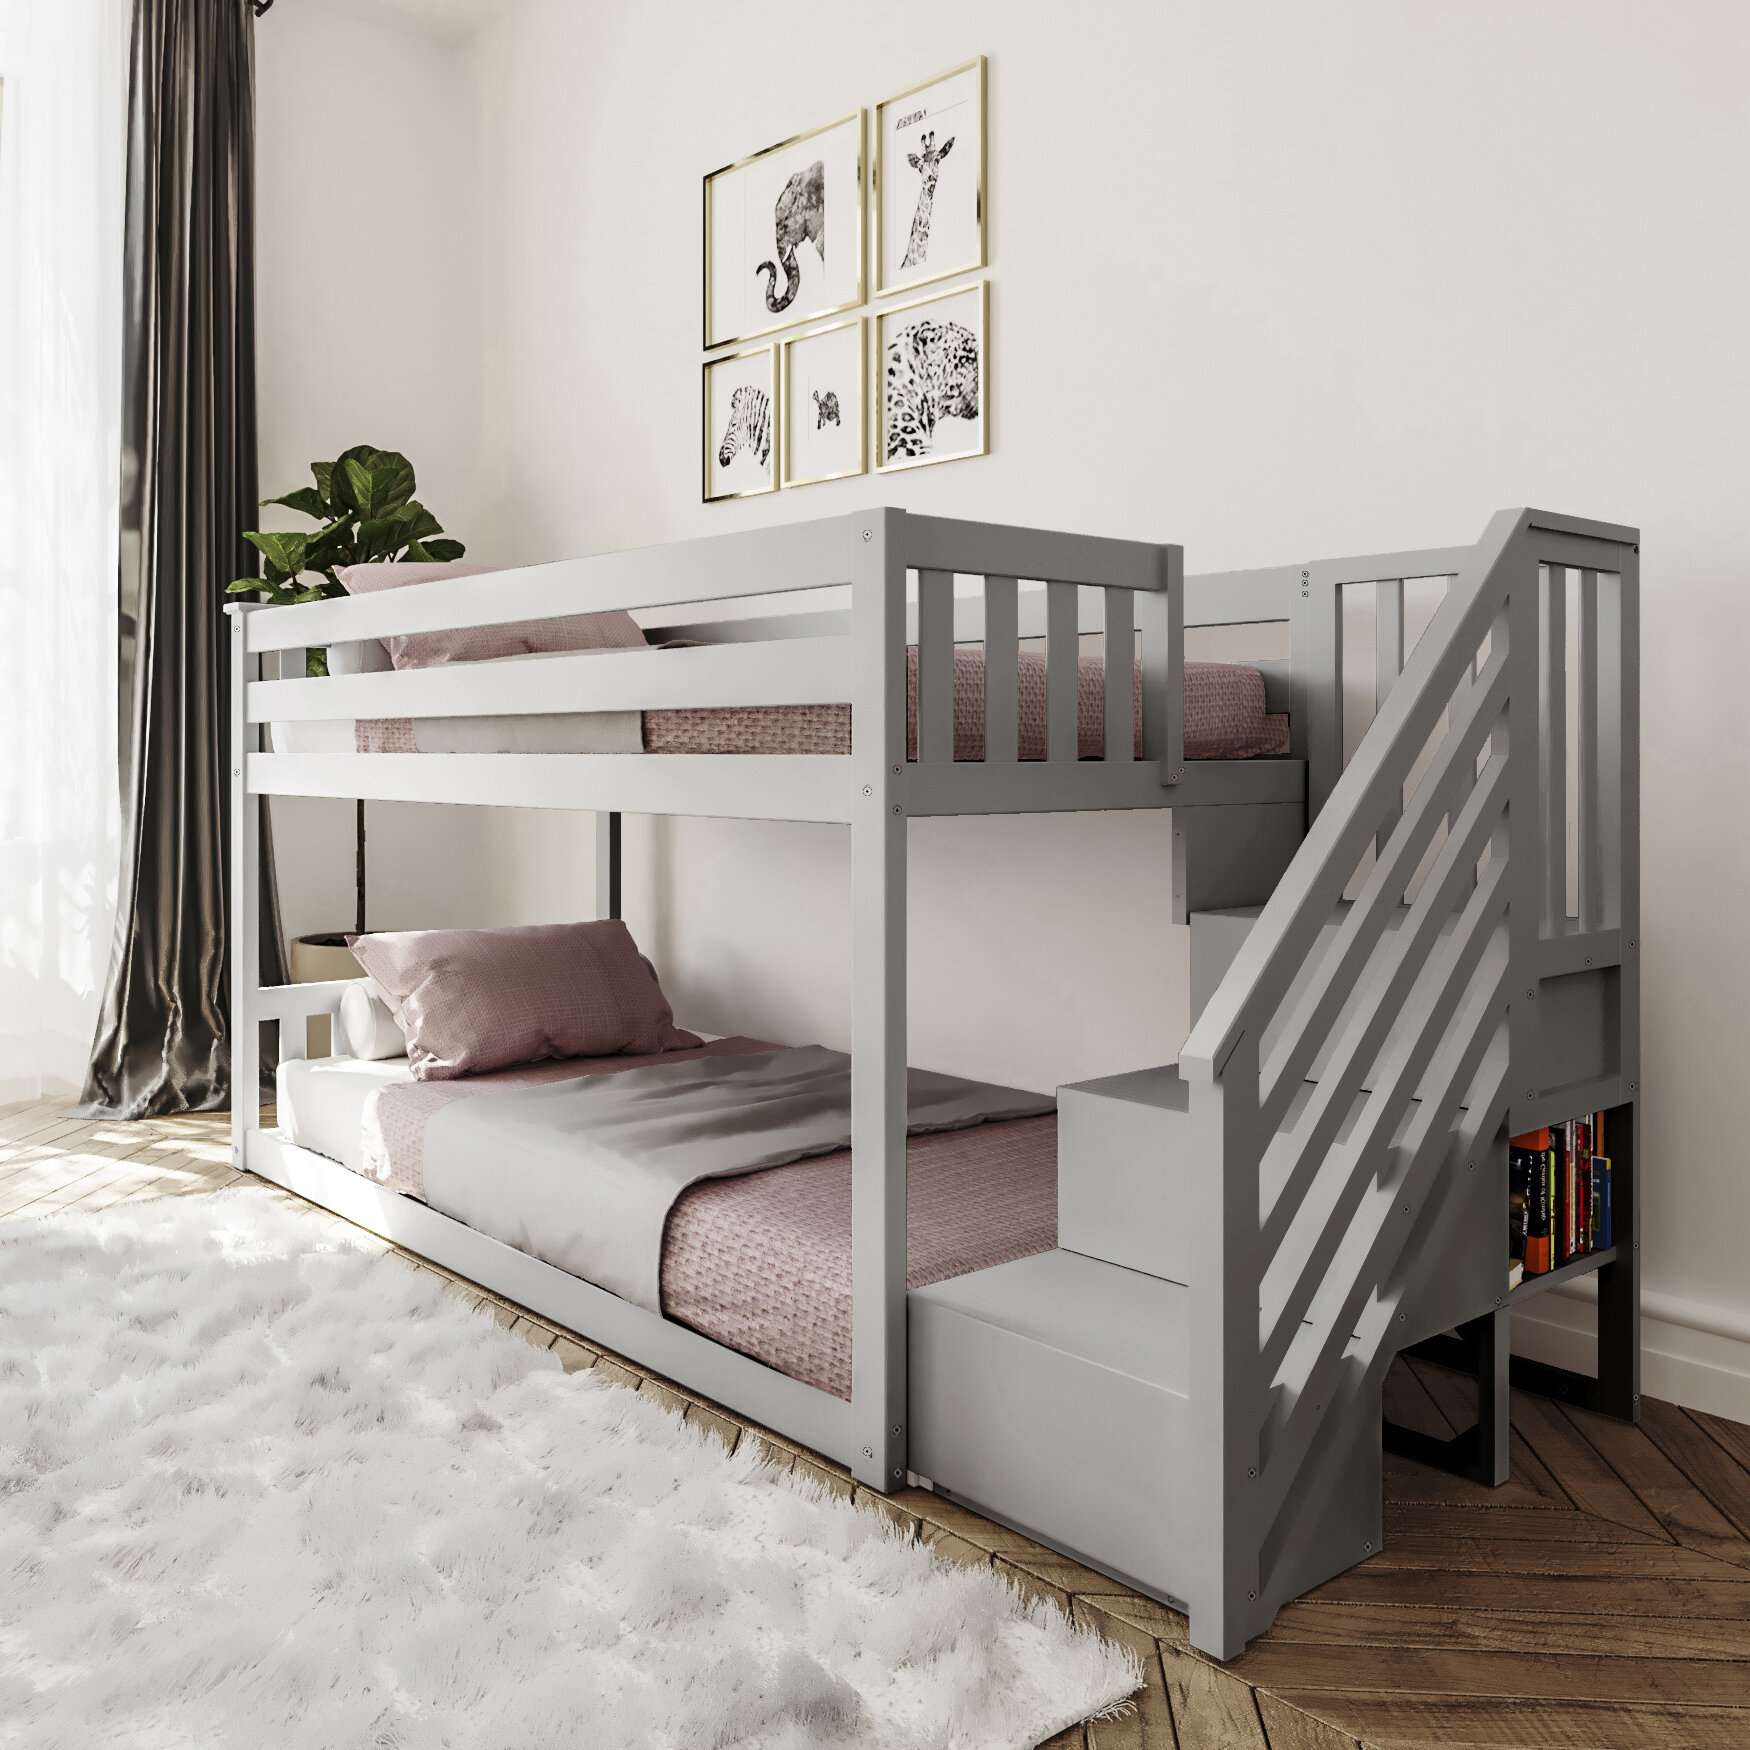 Picture of: Harriet Bee Kean Twin Over Twin Bunk Bed Reviews